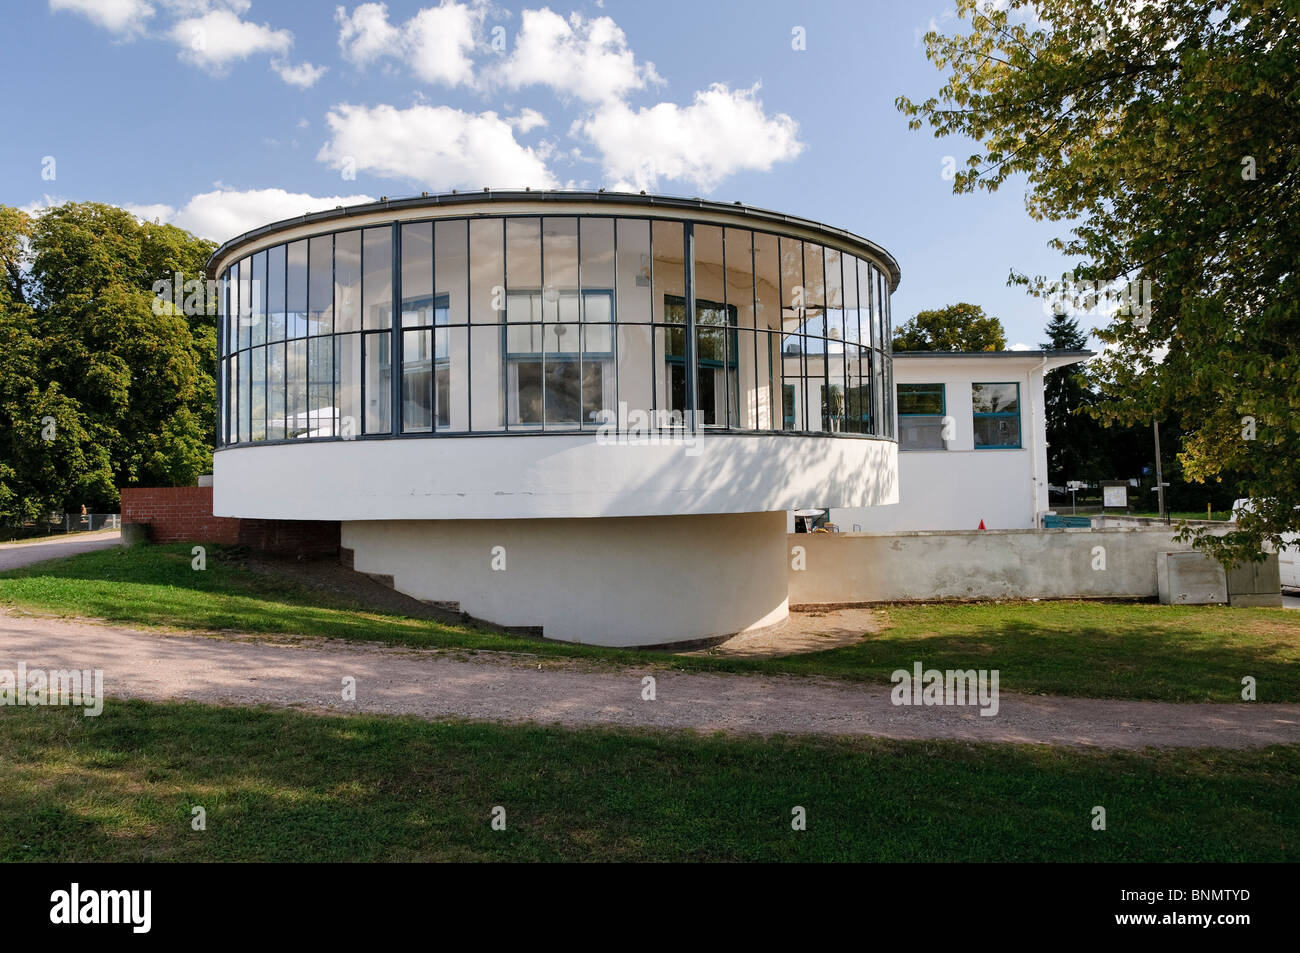 clue architecture bauhaus architectural style building dessau germany stock photo 30576769 alamy. Black Bedroom Furniture Sets. Home Design Ideas